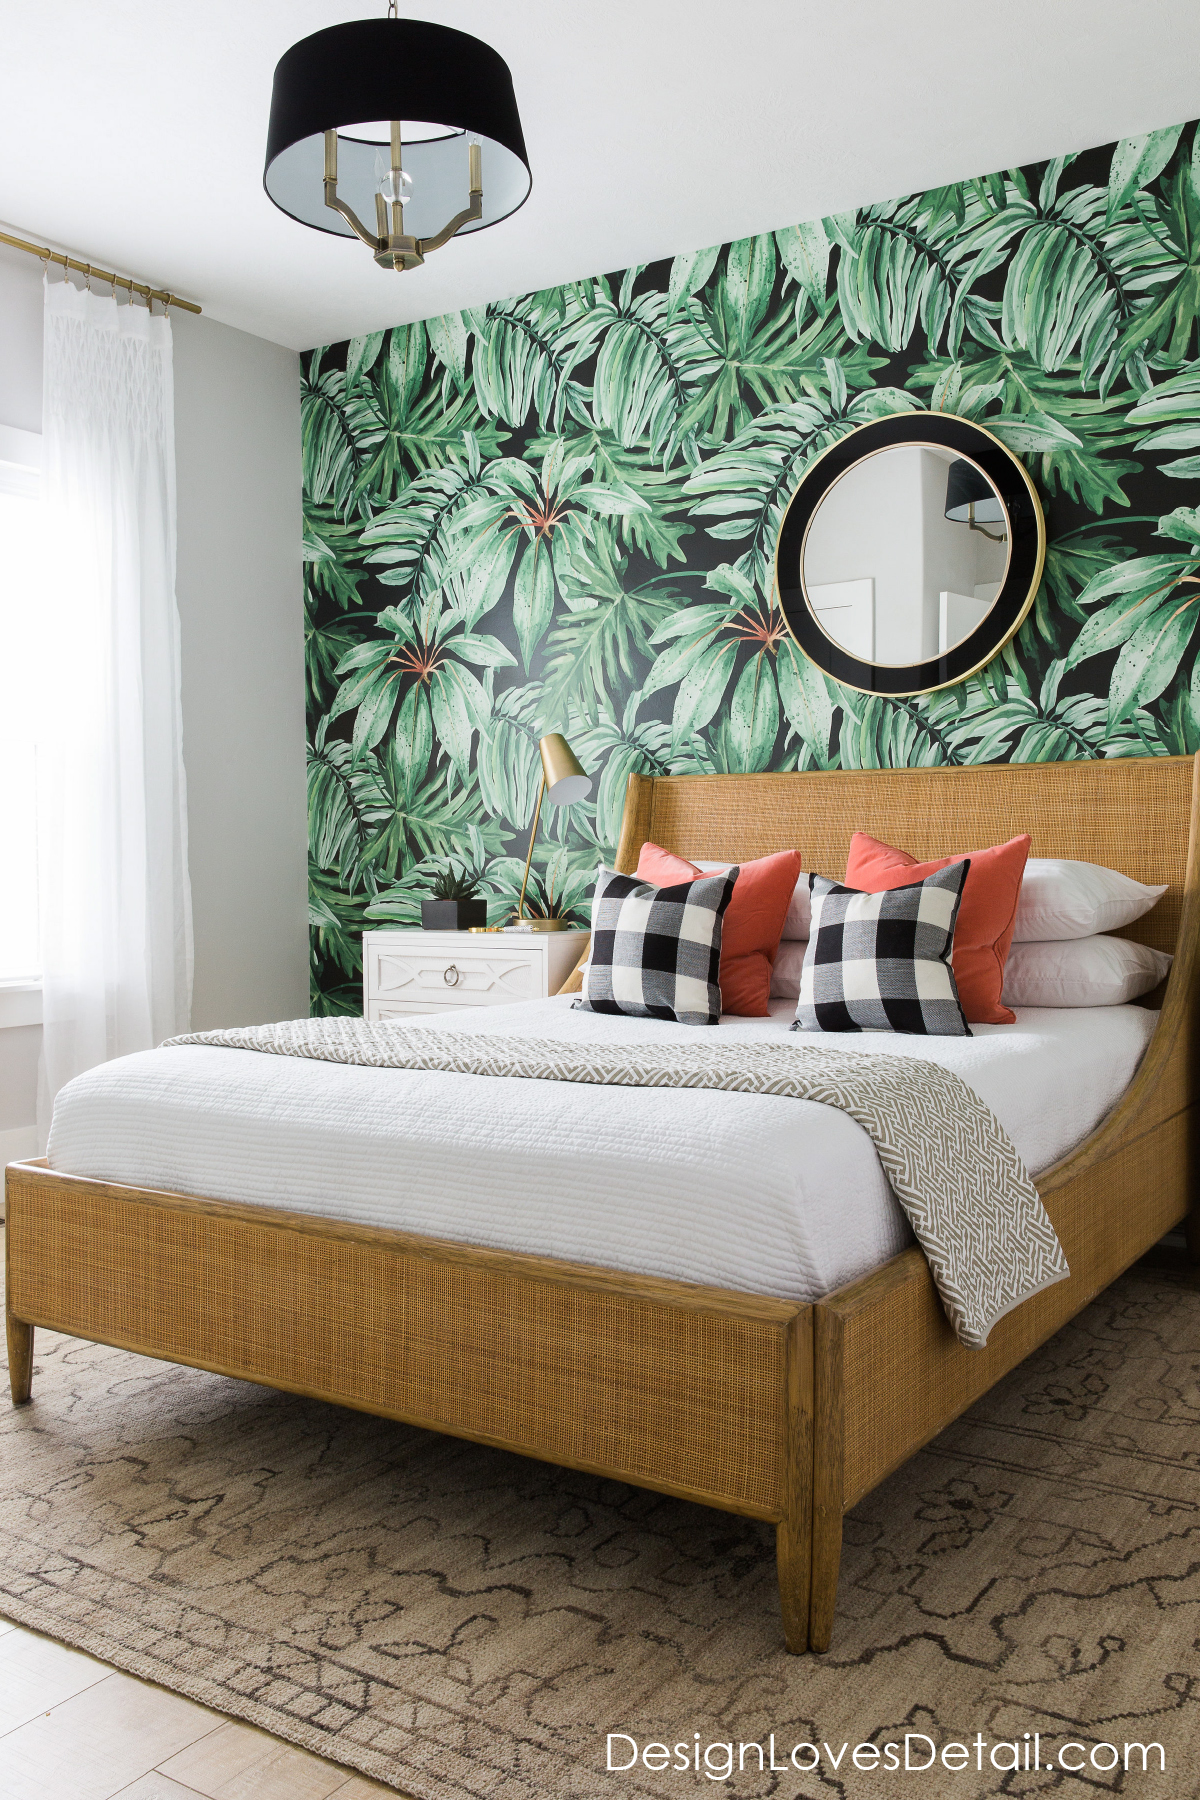 A romantic tropical jungle paradise! Love this guest room design & cool wallpaper by DesignLovesDetail.com